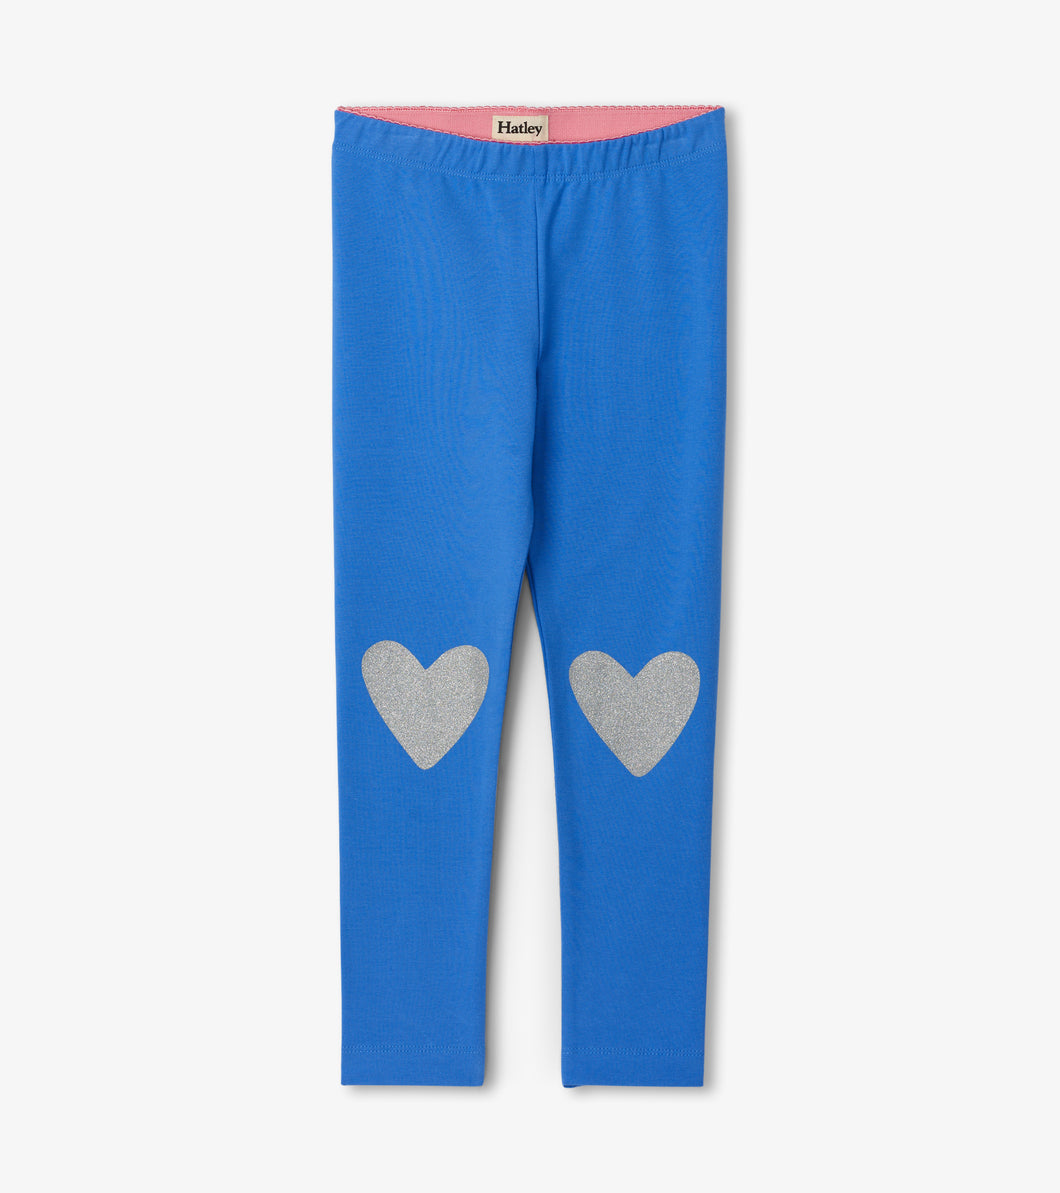 Hatley Leggings - Blue Skies